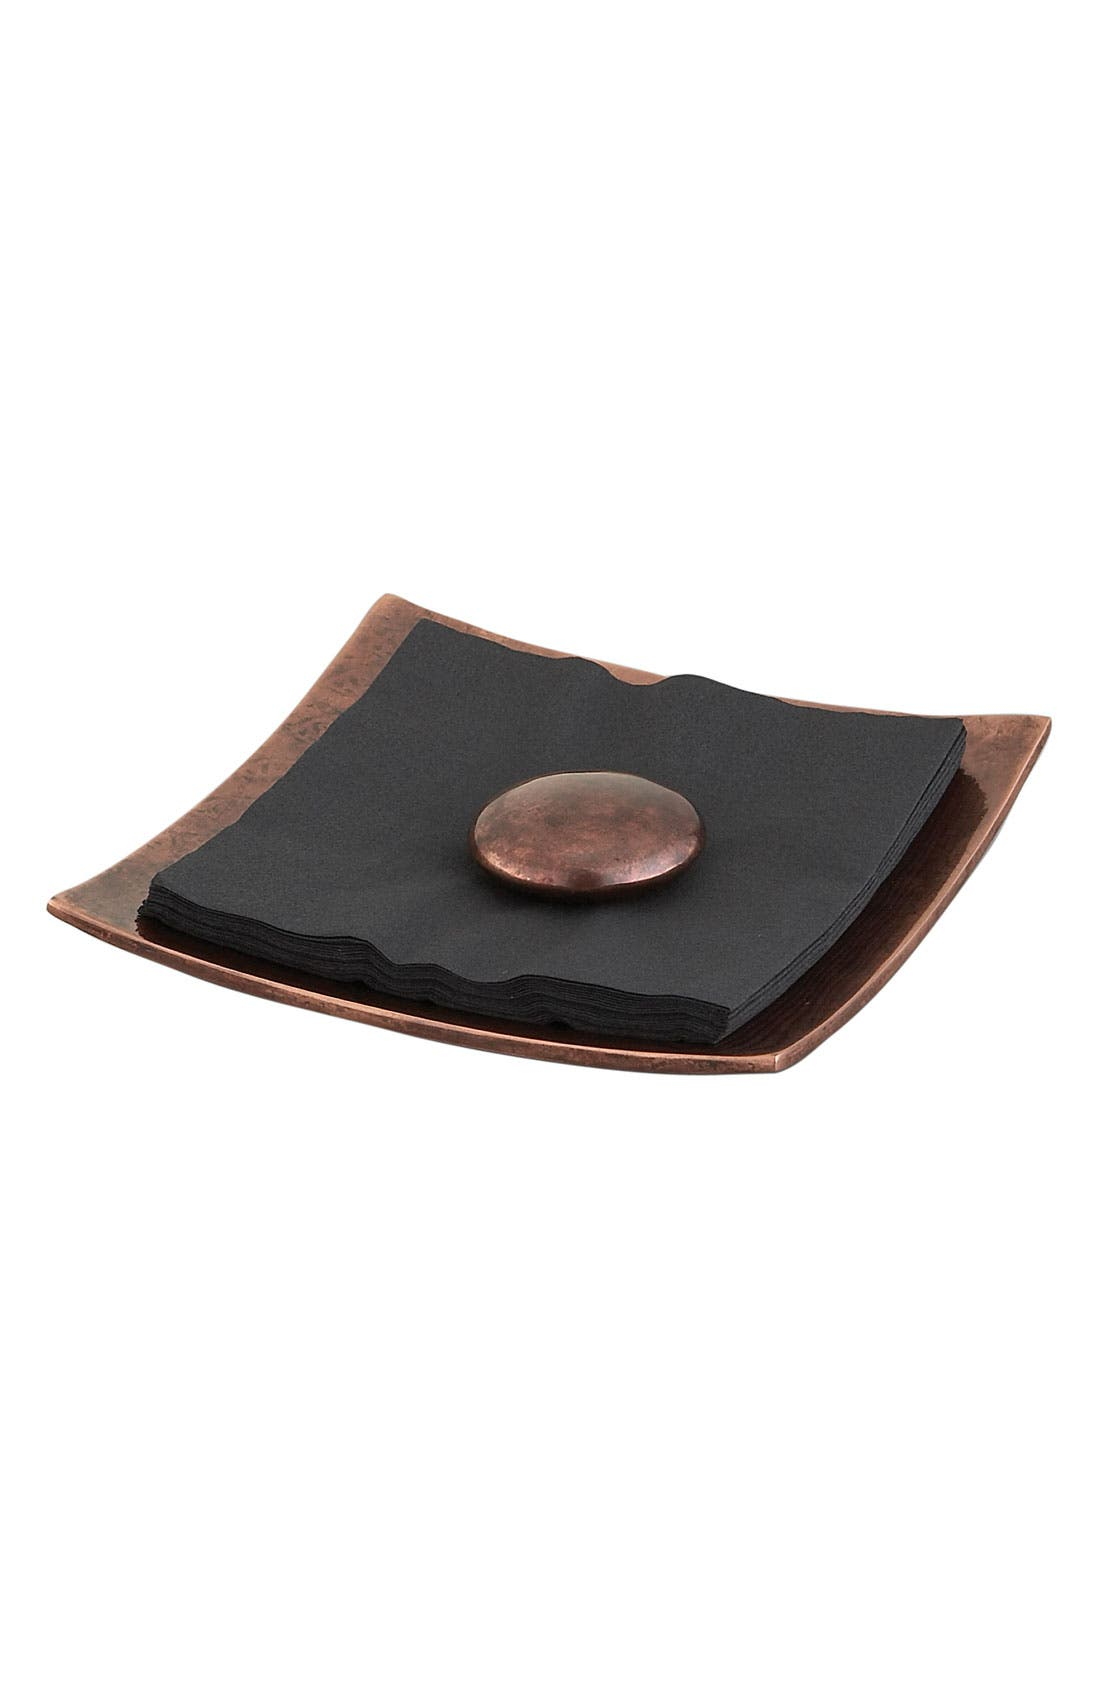 Main Image - Nambé 'Heritage Pebble' Napkin Holder